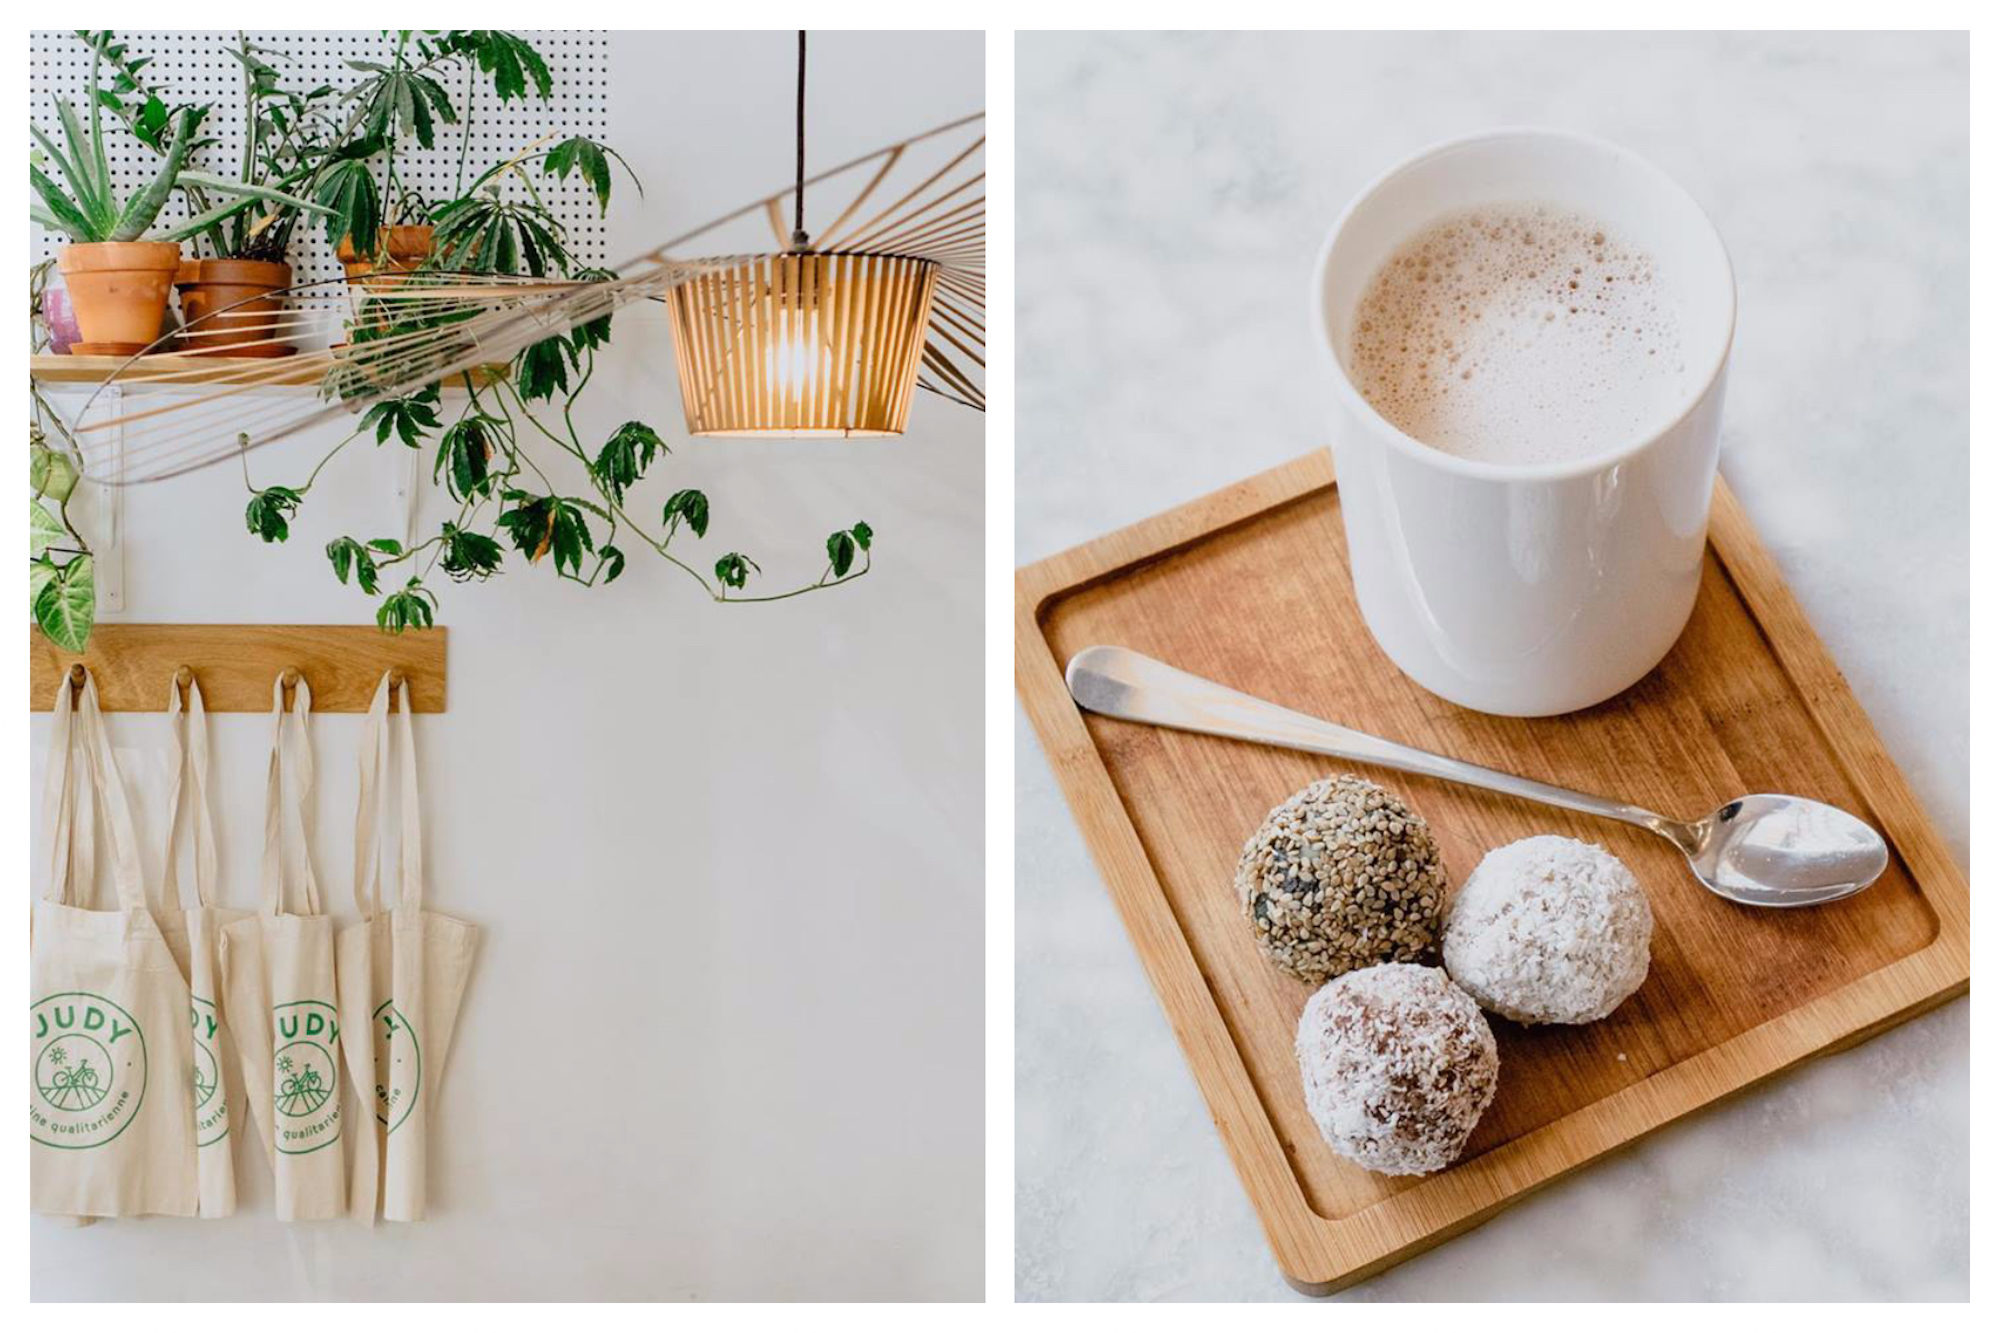 The natural style interiors of Judy coffee shop (left) and a hot drink with coconut dessert balls (right) in Paris' Saint Germain neighborhood